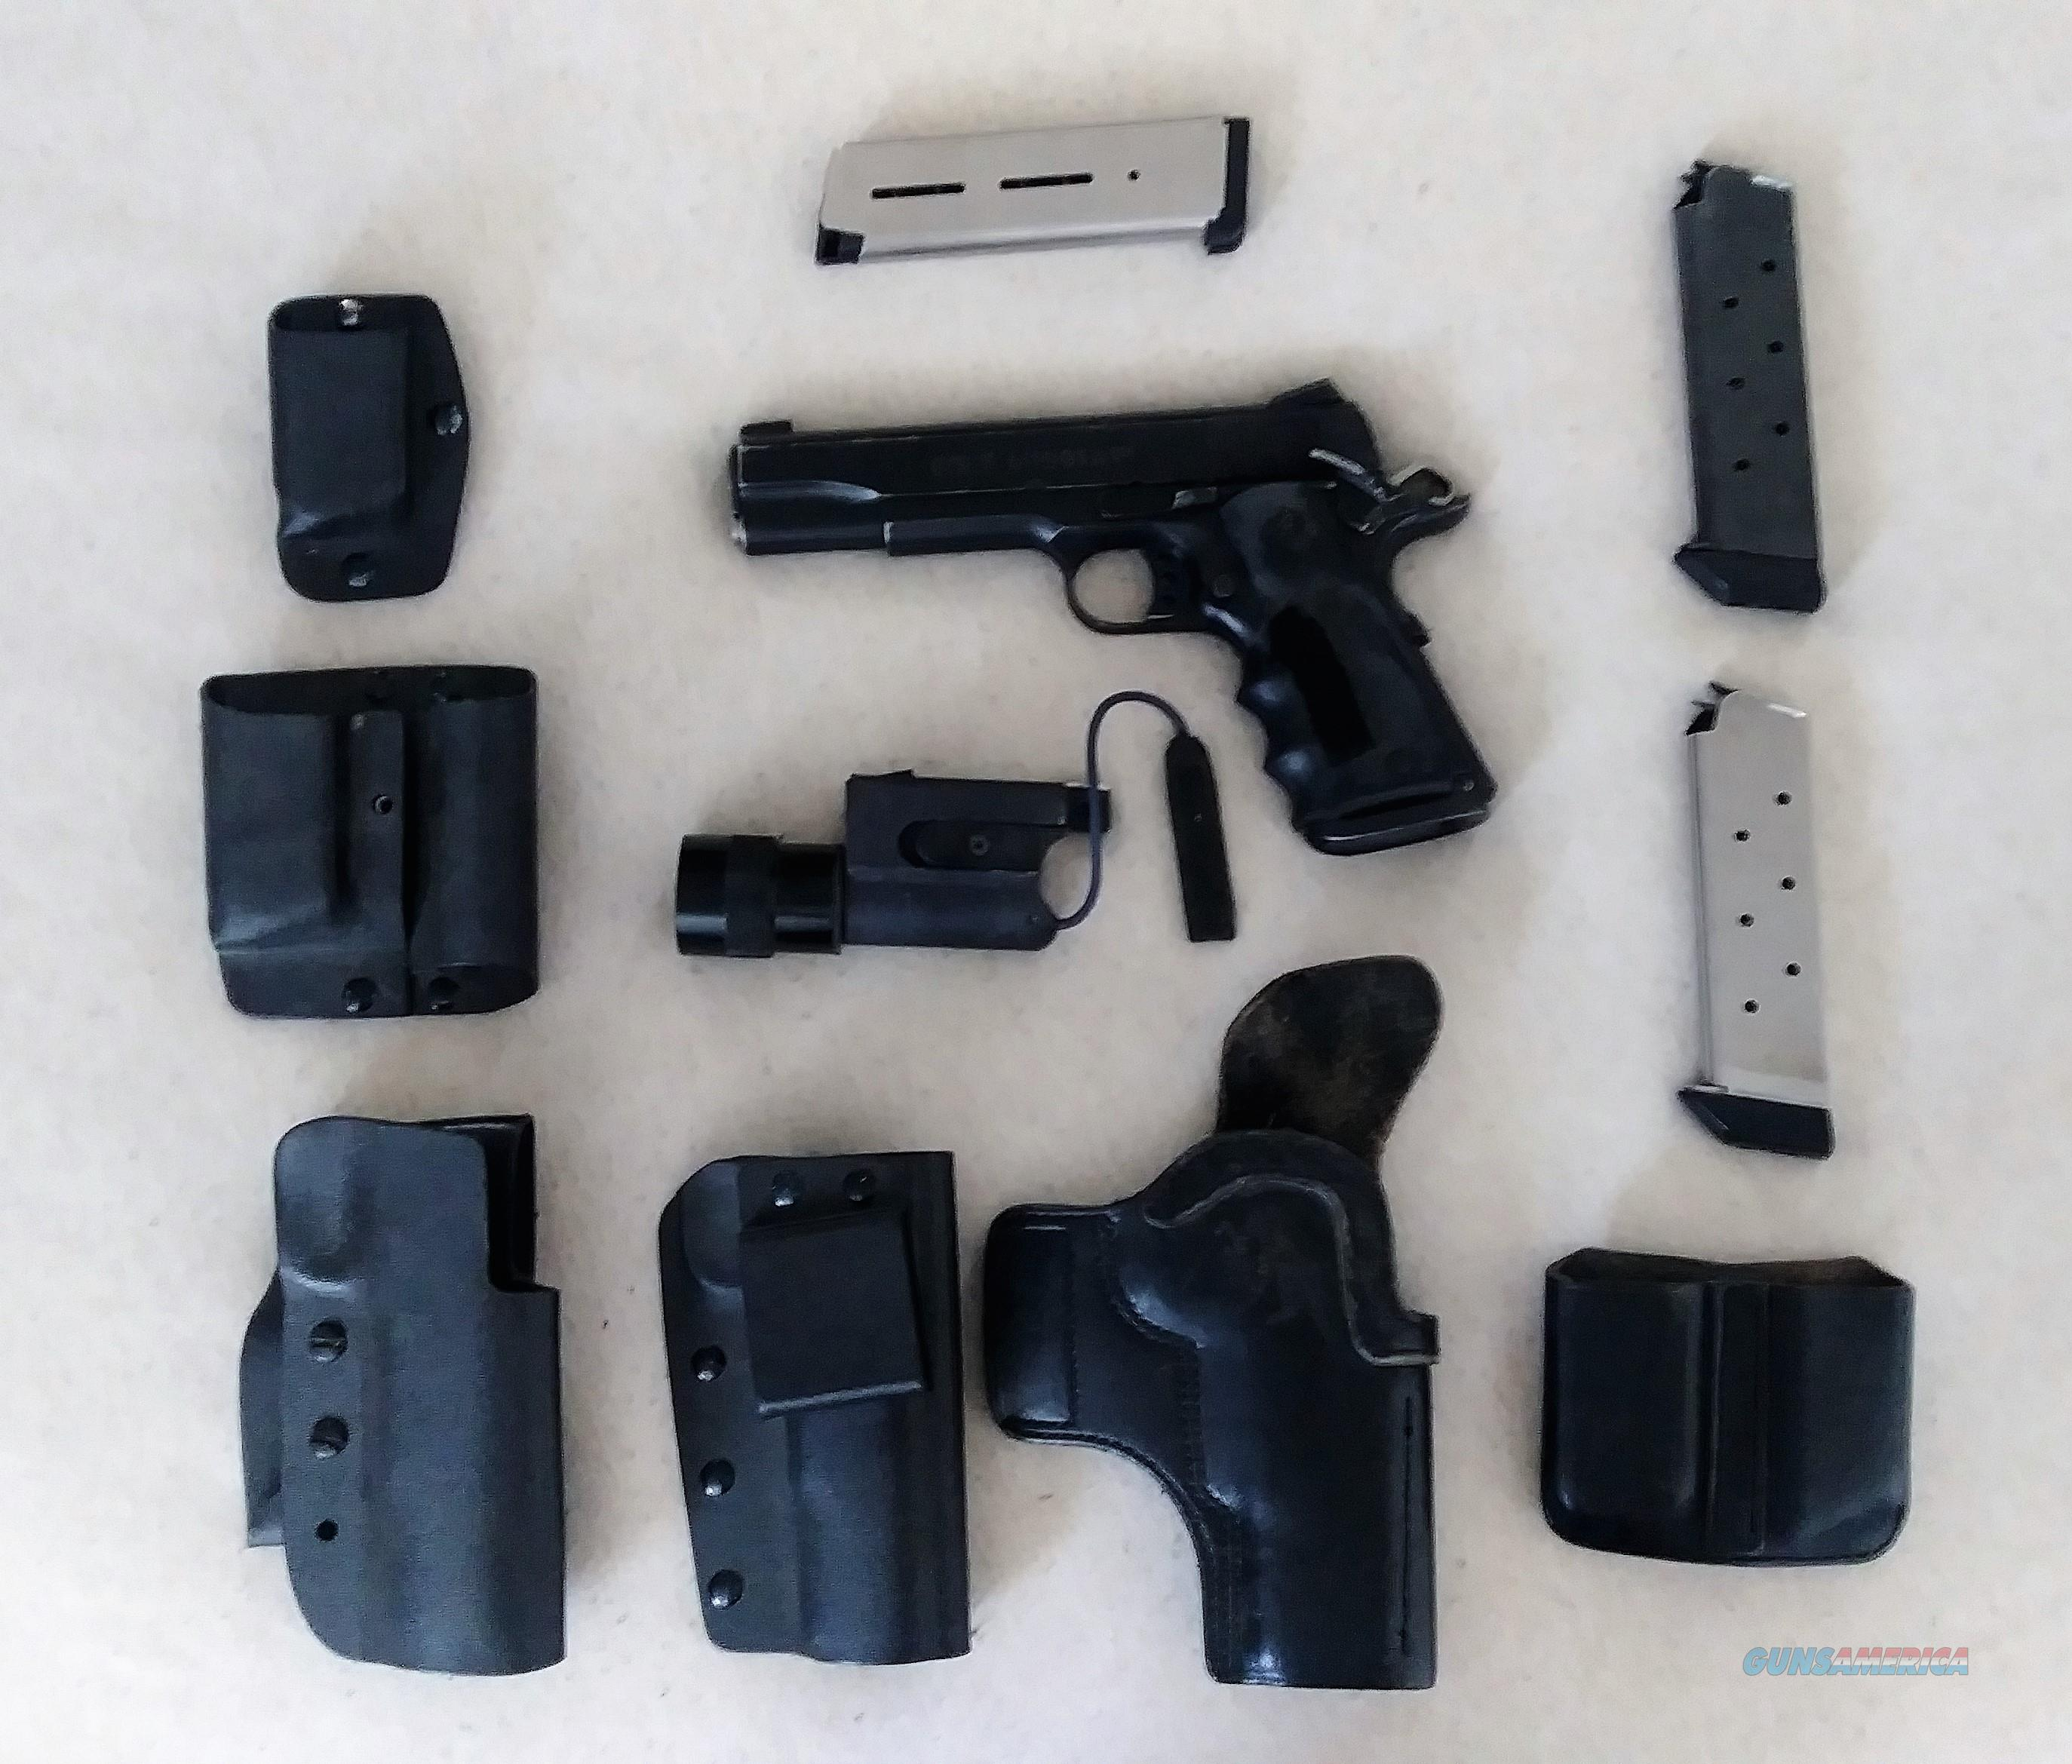 1911 Kydex and Leather Holsters, Mag pouches, Magazines, Surefire mounted light  Non-Guns > Holsters and Gunleather > 1911